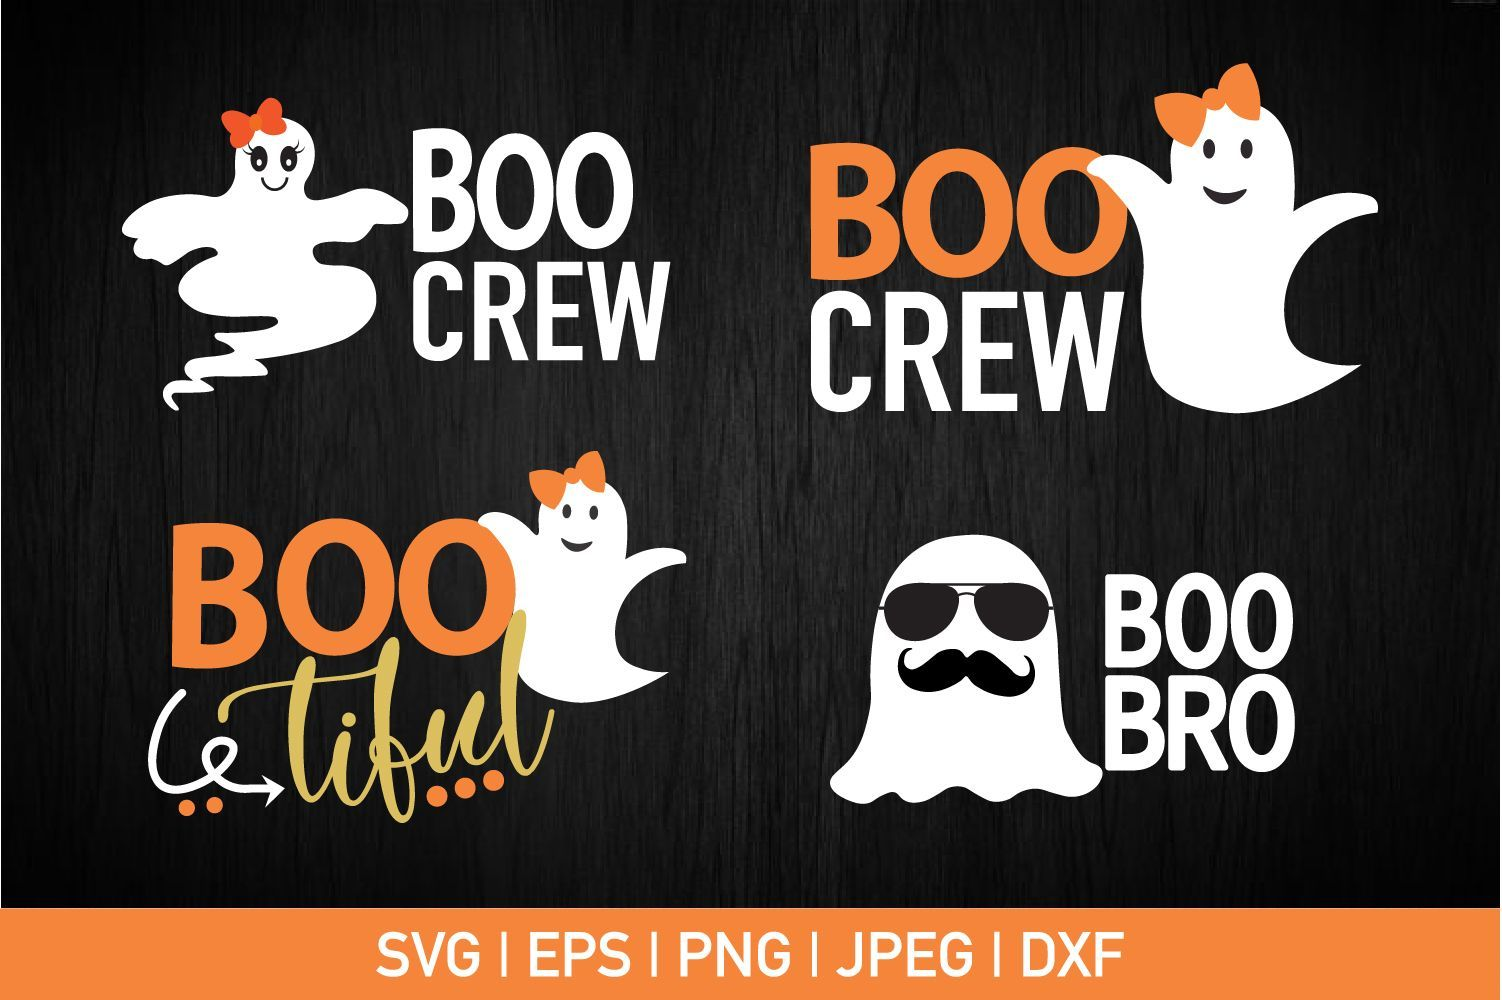 Ghost Bundle Boo Crew Boo Bro Boo Tiful #programingsoftware Can be used with the Silhouette cutting machines, Cricut, or other program/software that accept these files. Perfect for creating vinyl... #programingsoftware